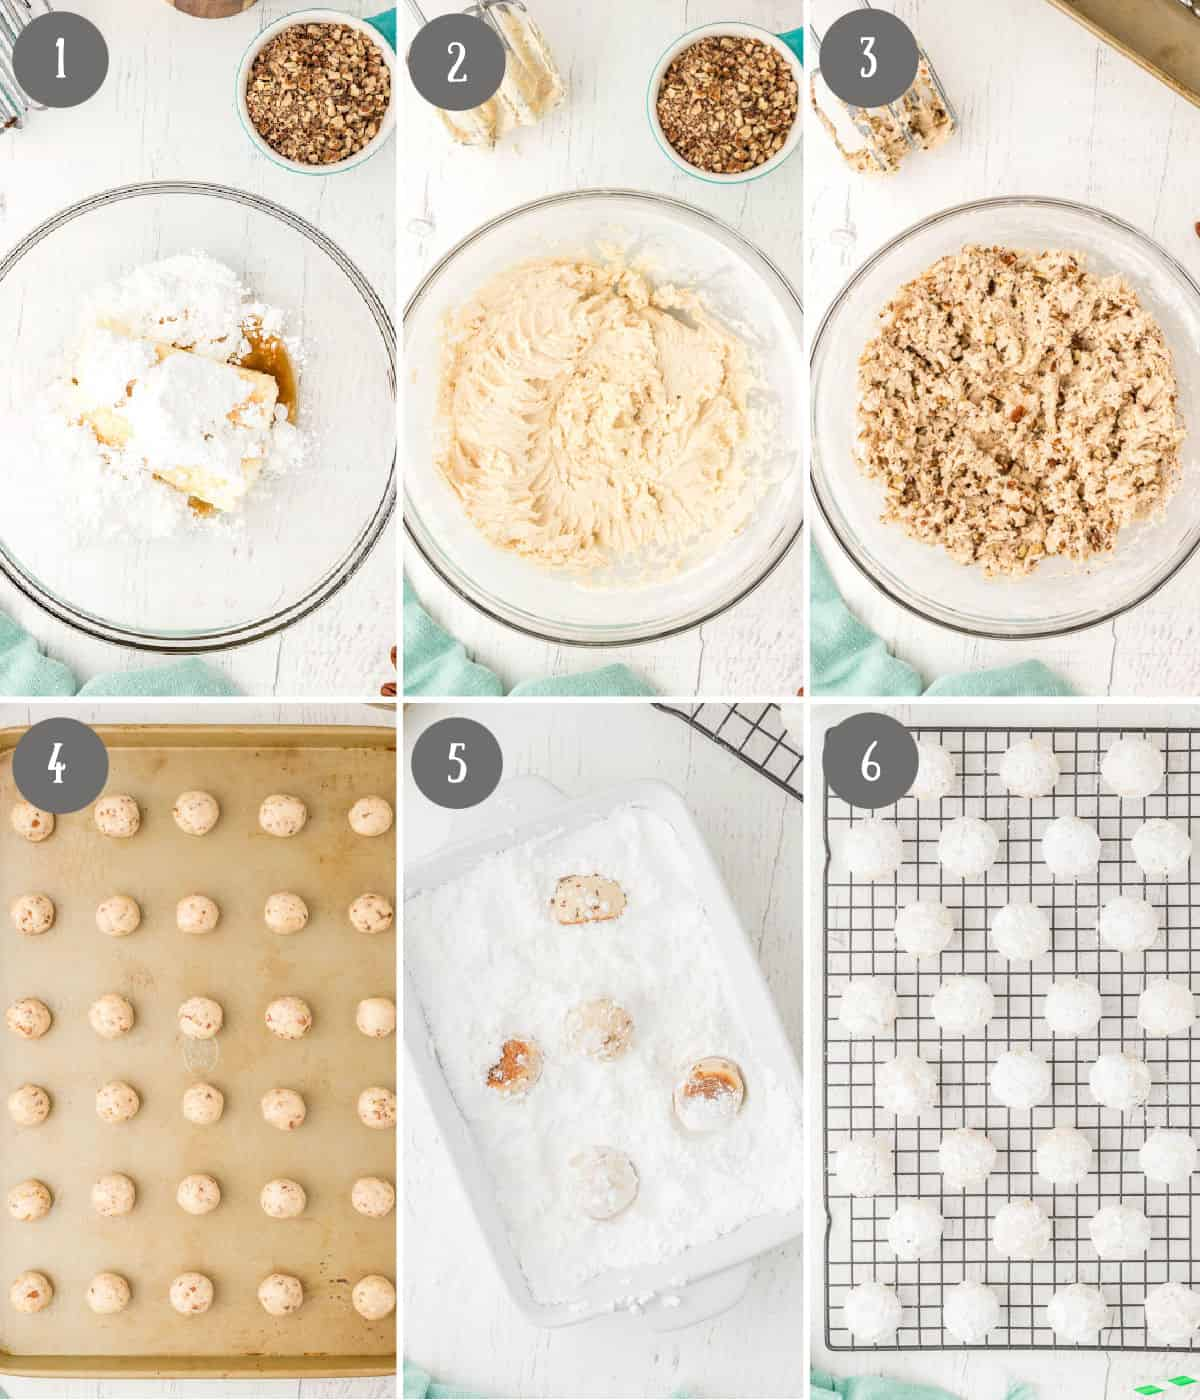 Six process photos. First one, wet ingredients added into a bowl. Second one, wet ingredients blended together. Third one, nuts added in. Third one, cookie dough rolled out into balls. Fourth one, cookie balls tossed in powdered sugar. Sixth one, cookies placed on a baking rack.